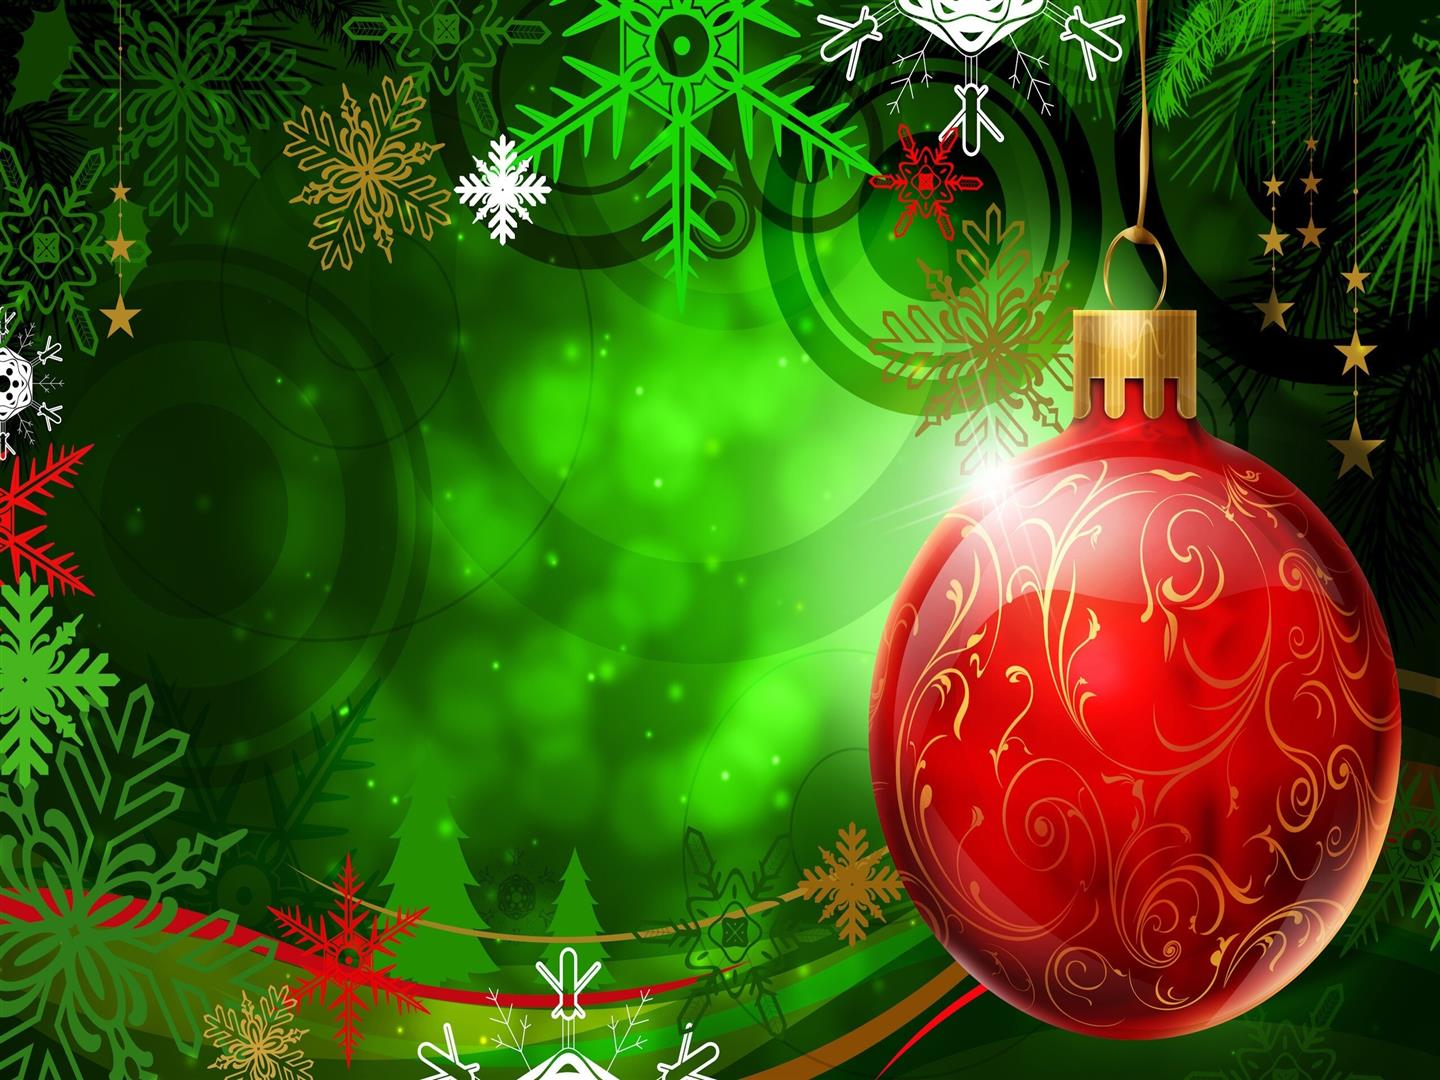 1440x1080 Red Christmas Ball in Green Background